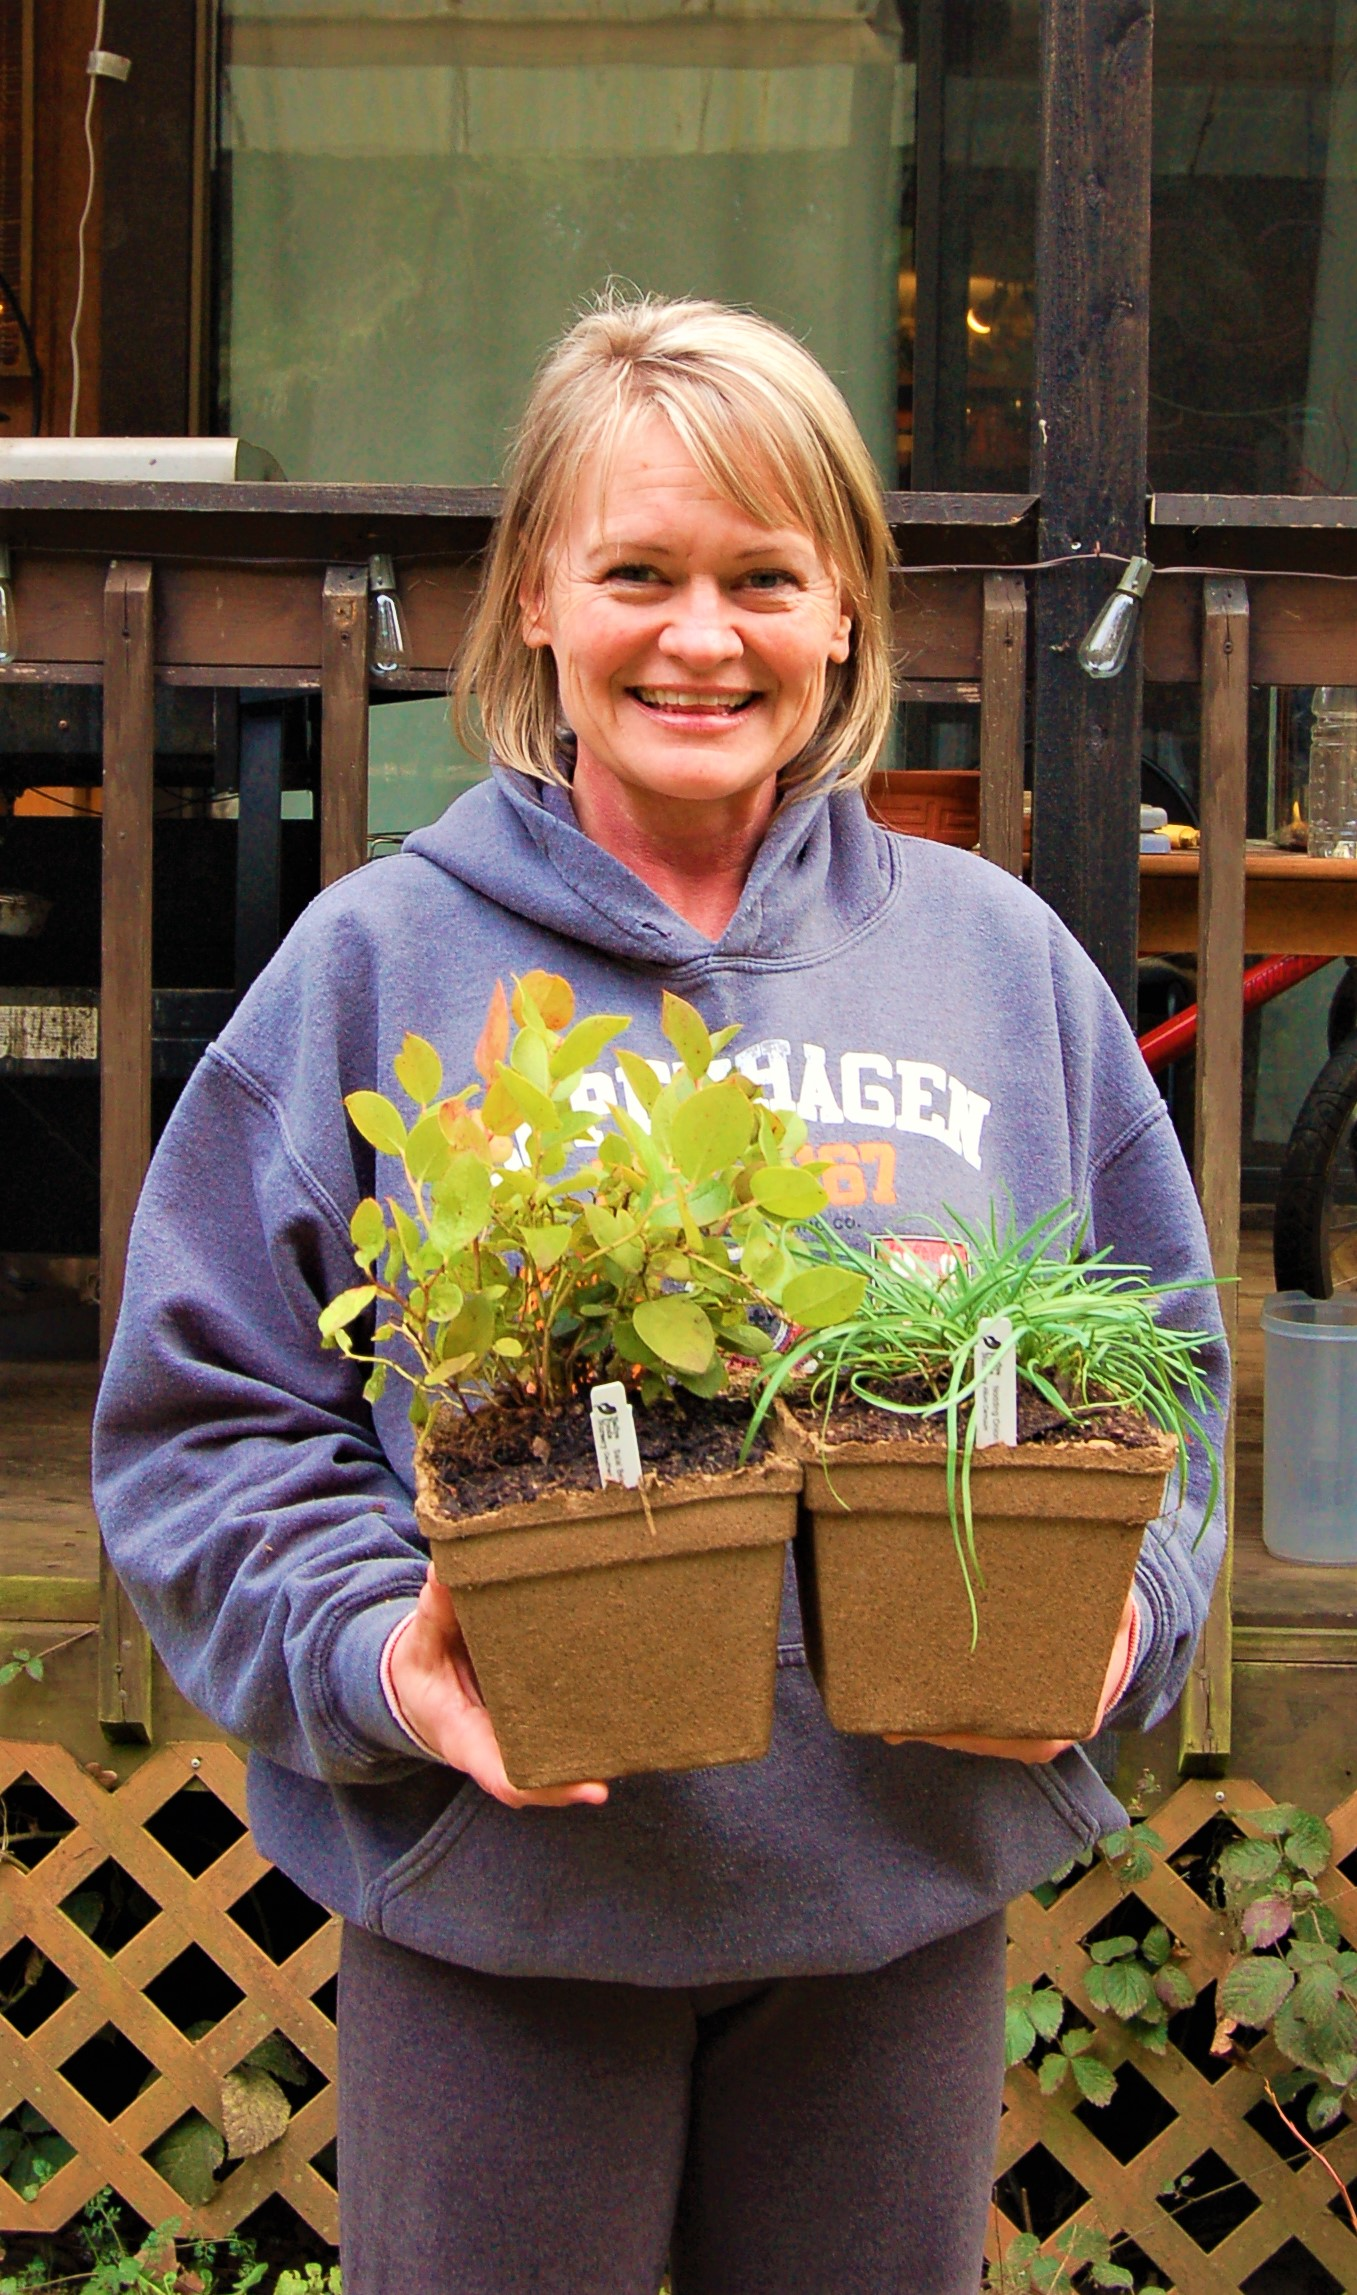 andrea holding potted plant